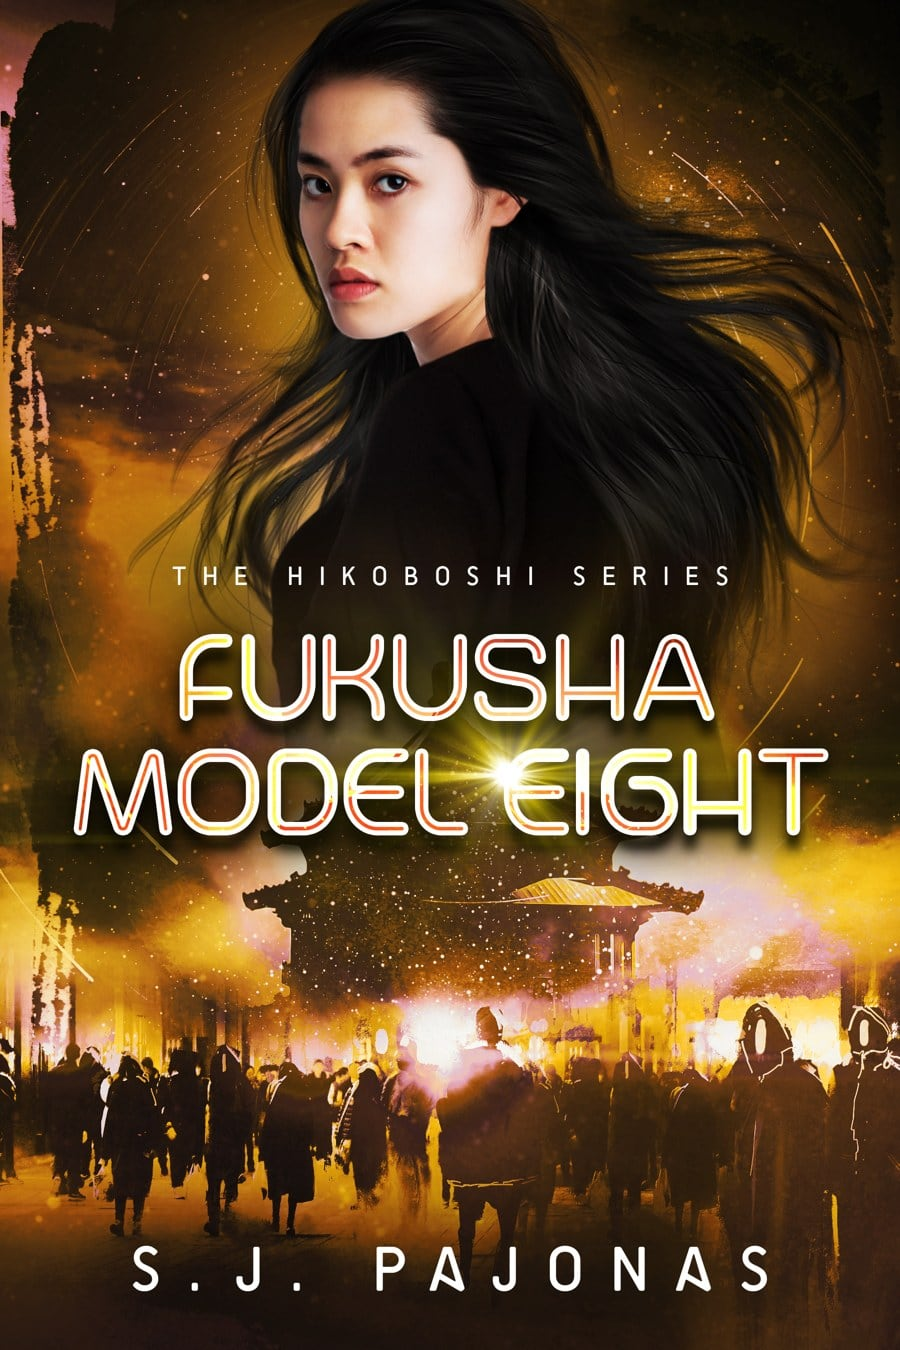 FUKUSHA MODEL EIGHT, the third book of the Hikoboshi Series, is now available on Amazon, iBooks, Nook, Kobo, and Google Play! Continue your journey across Hikari with Yumi today!